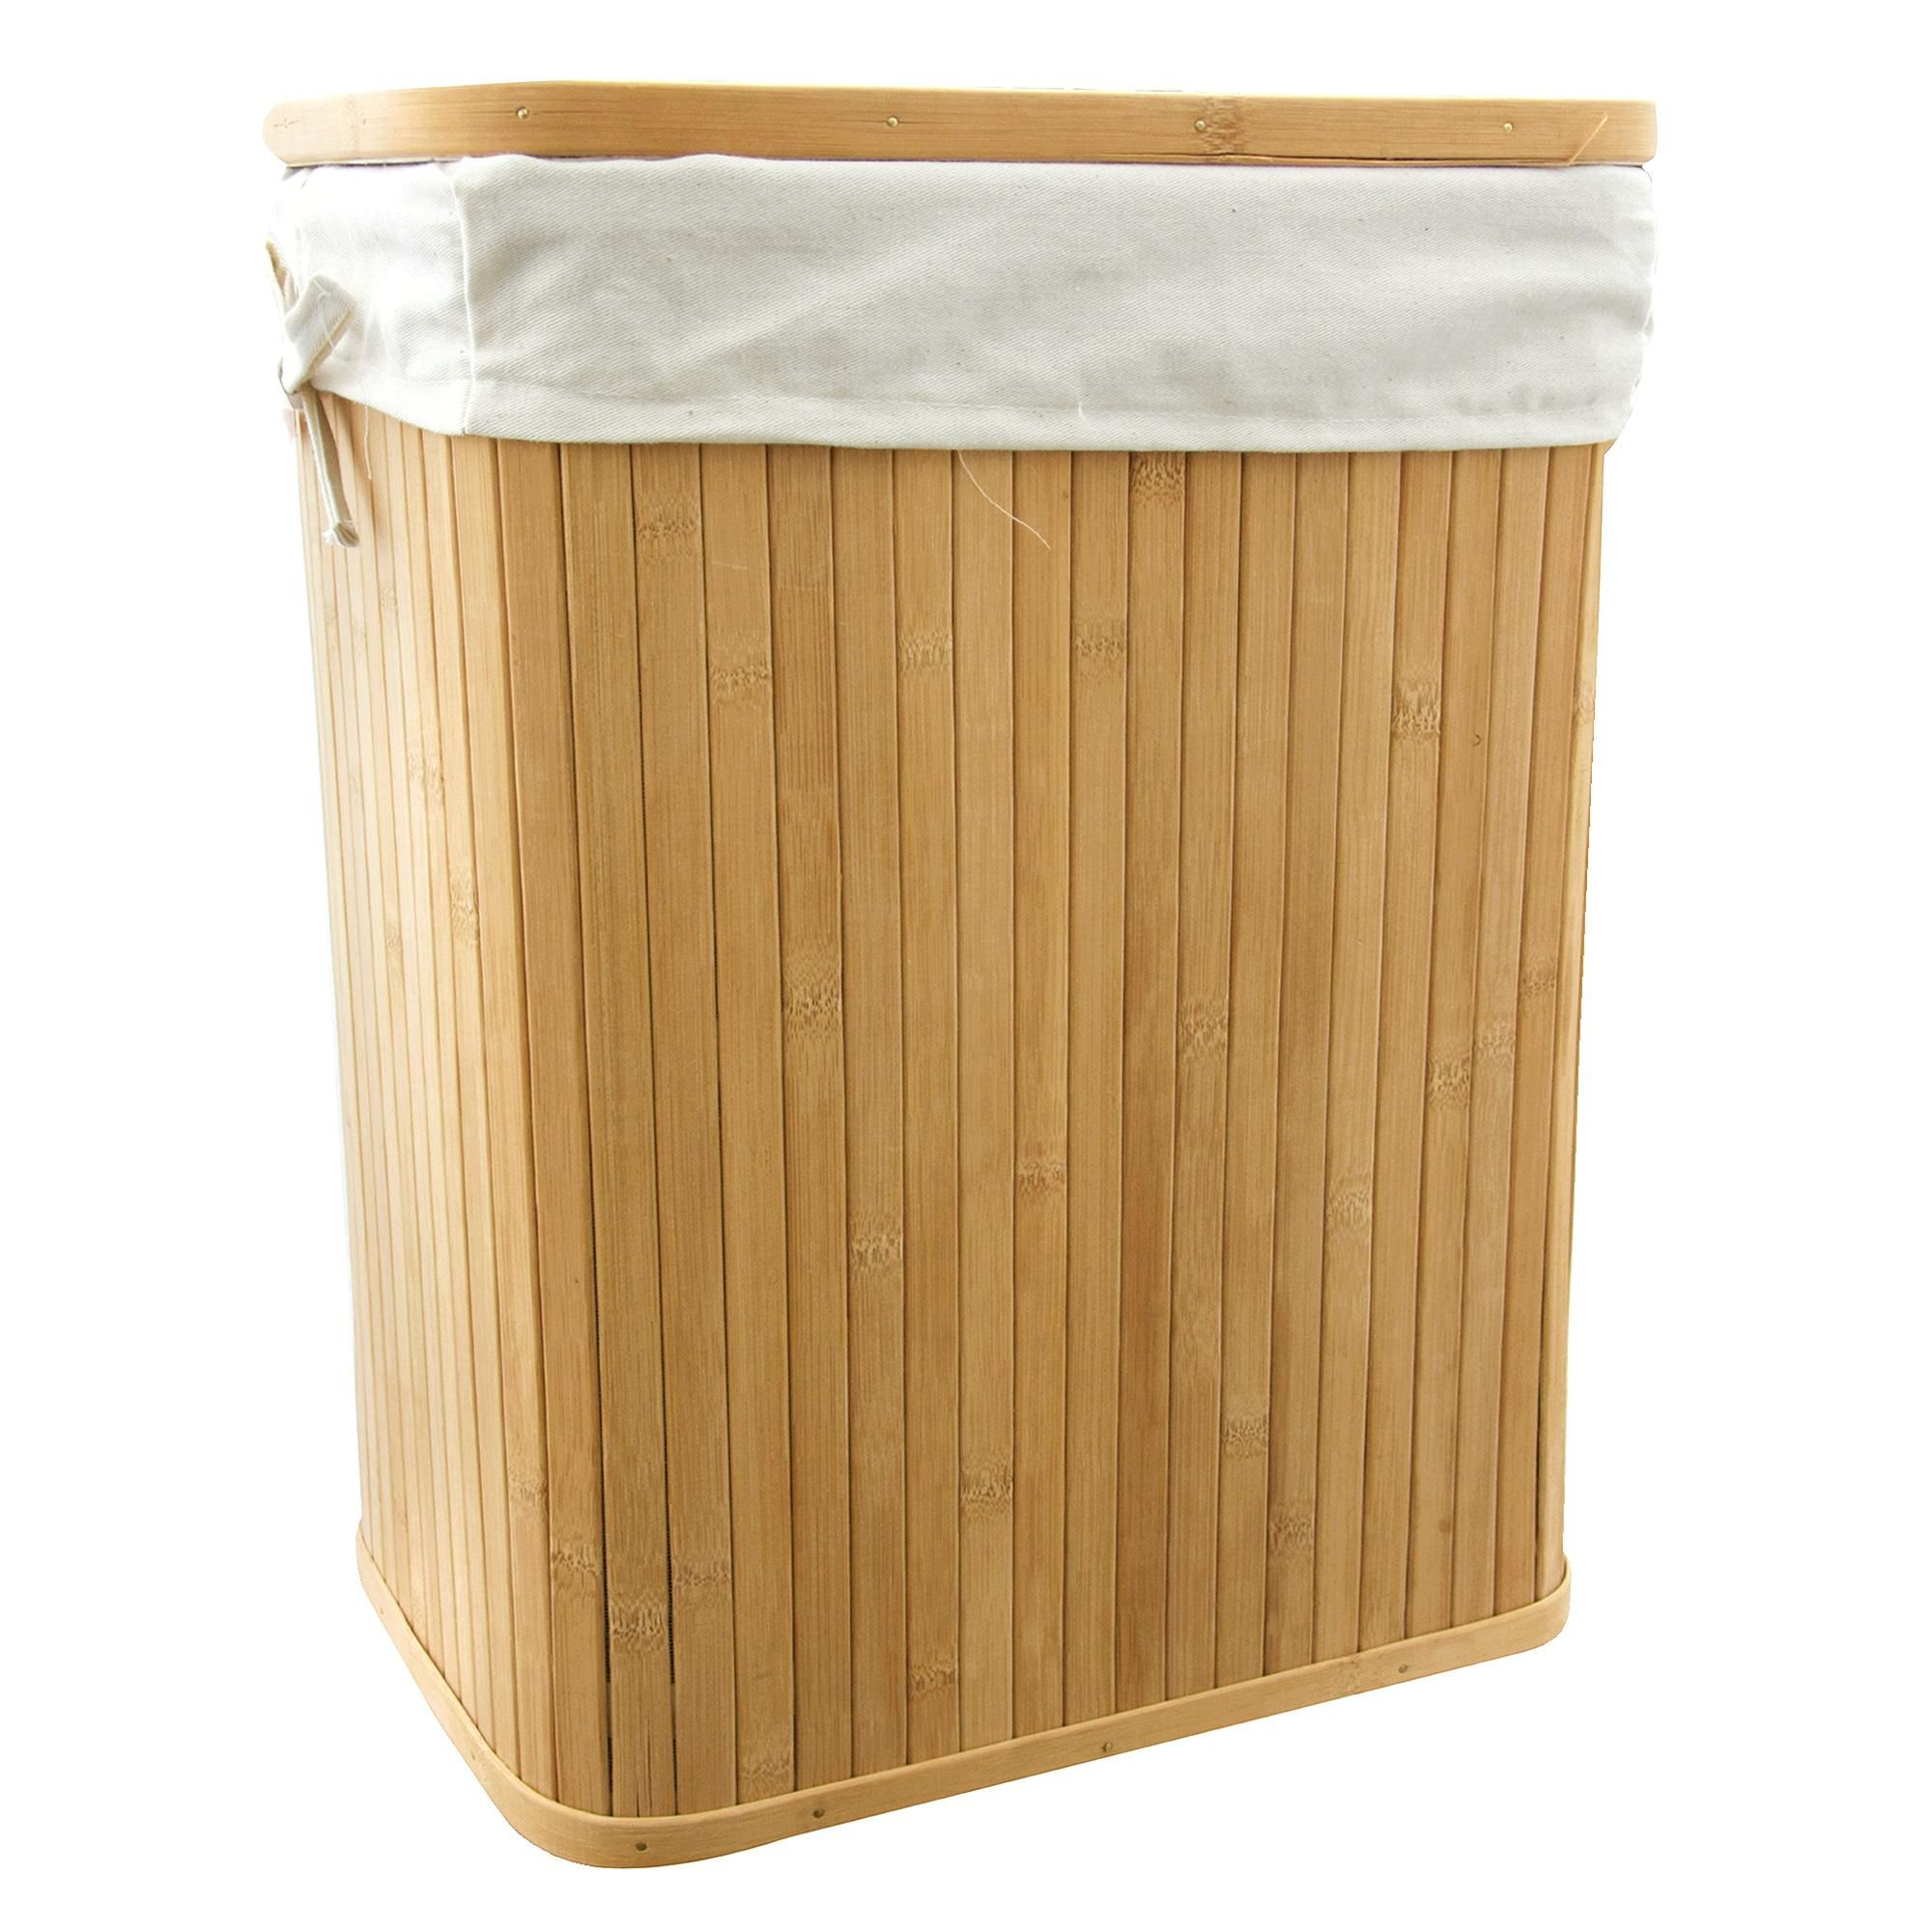 Woodford Bamboo Laundry Basket Laundry Hamper Bamboo Bathroom Laundry Basket